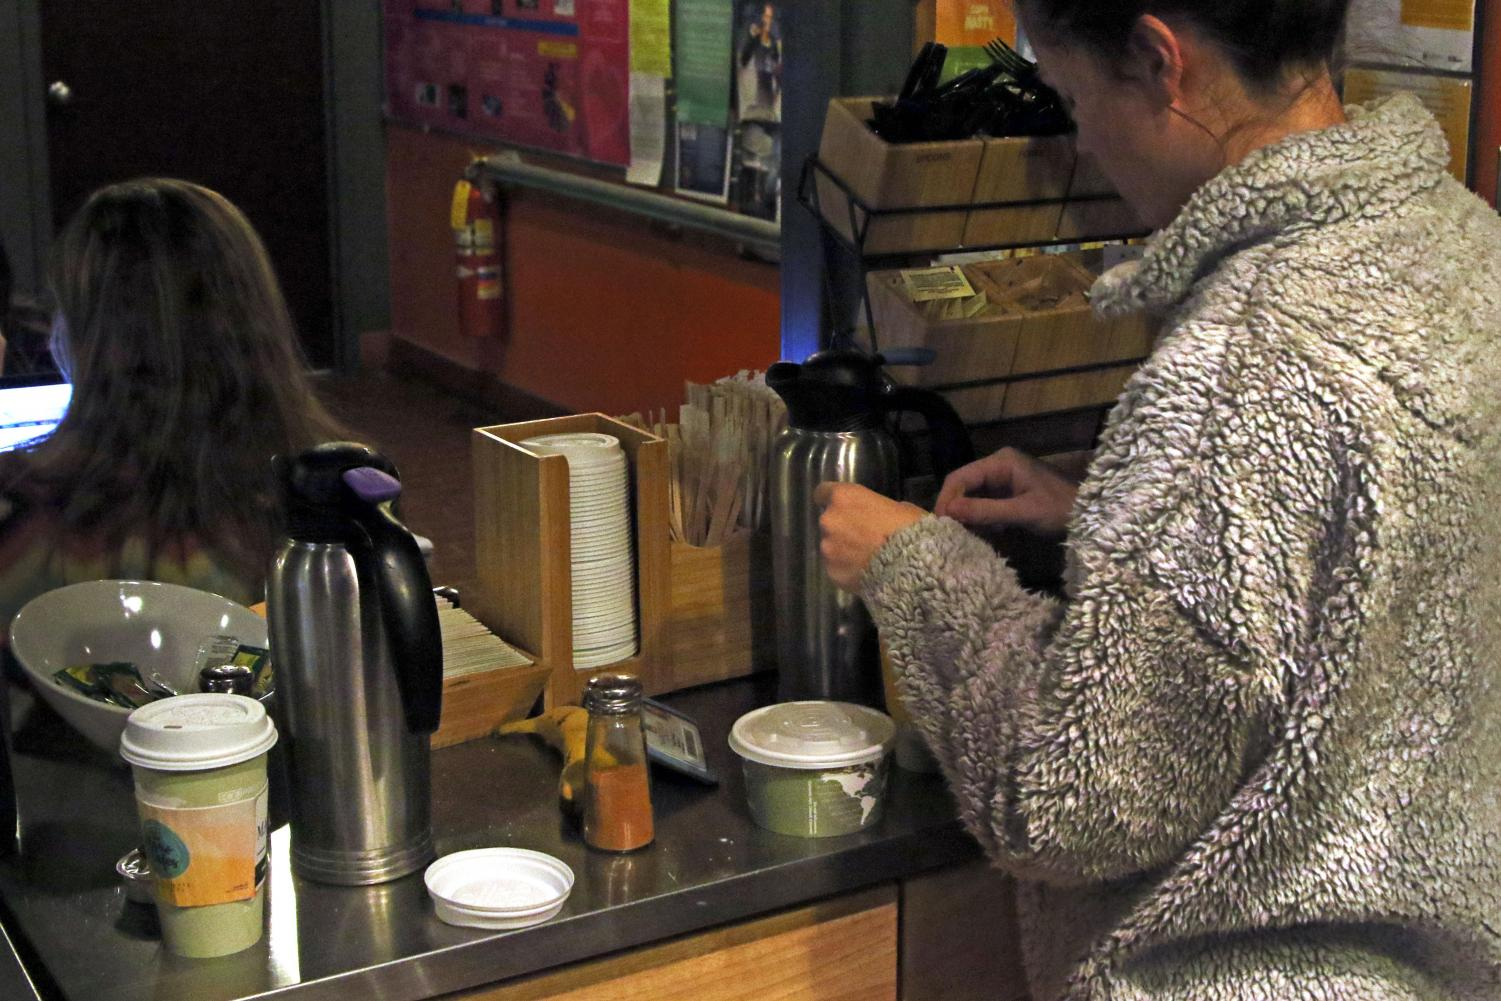 The Brew Cafes have taken steps to become more eco-friendly.